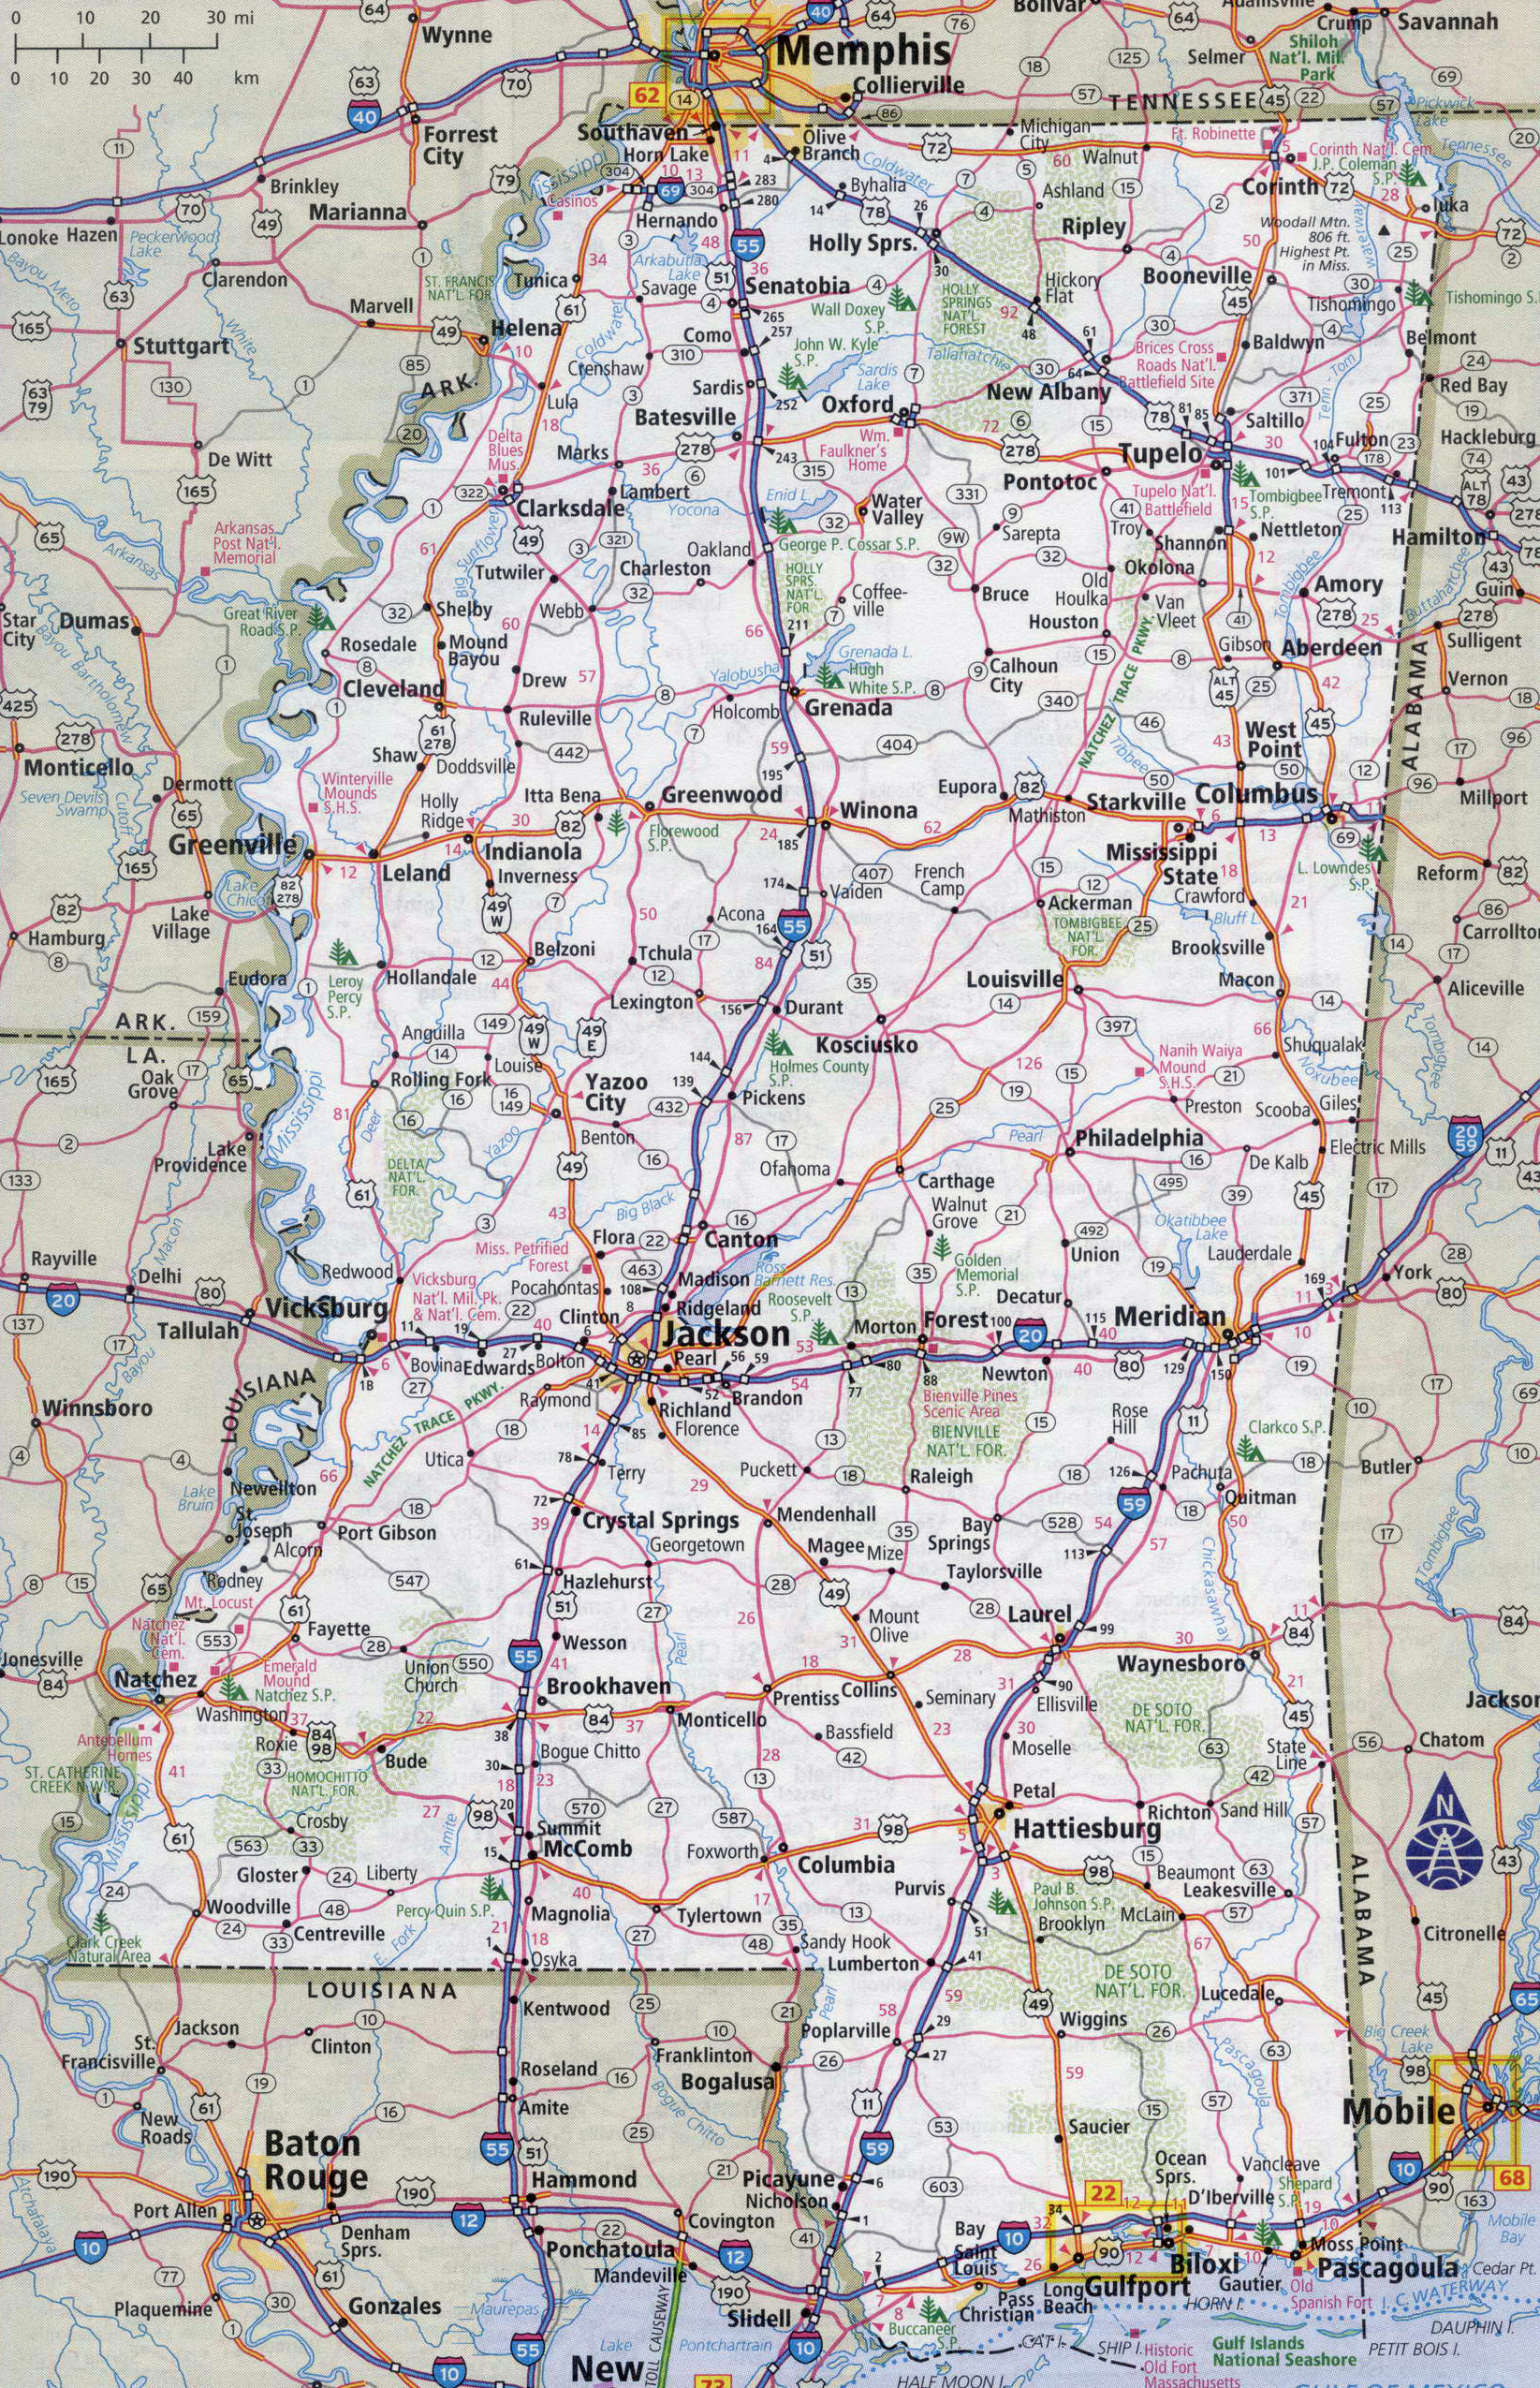 Large Detailed Roads And Highways Map Of Mississippi State With - Maps mississippi